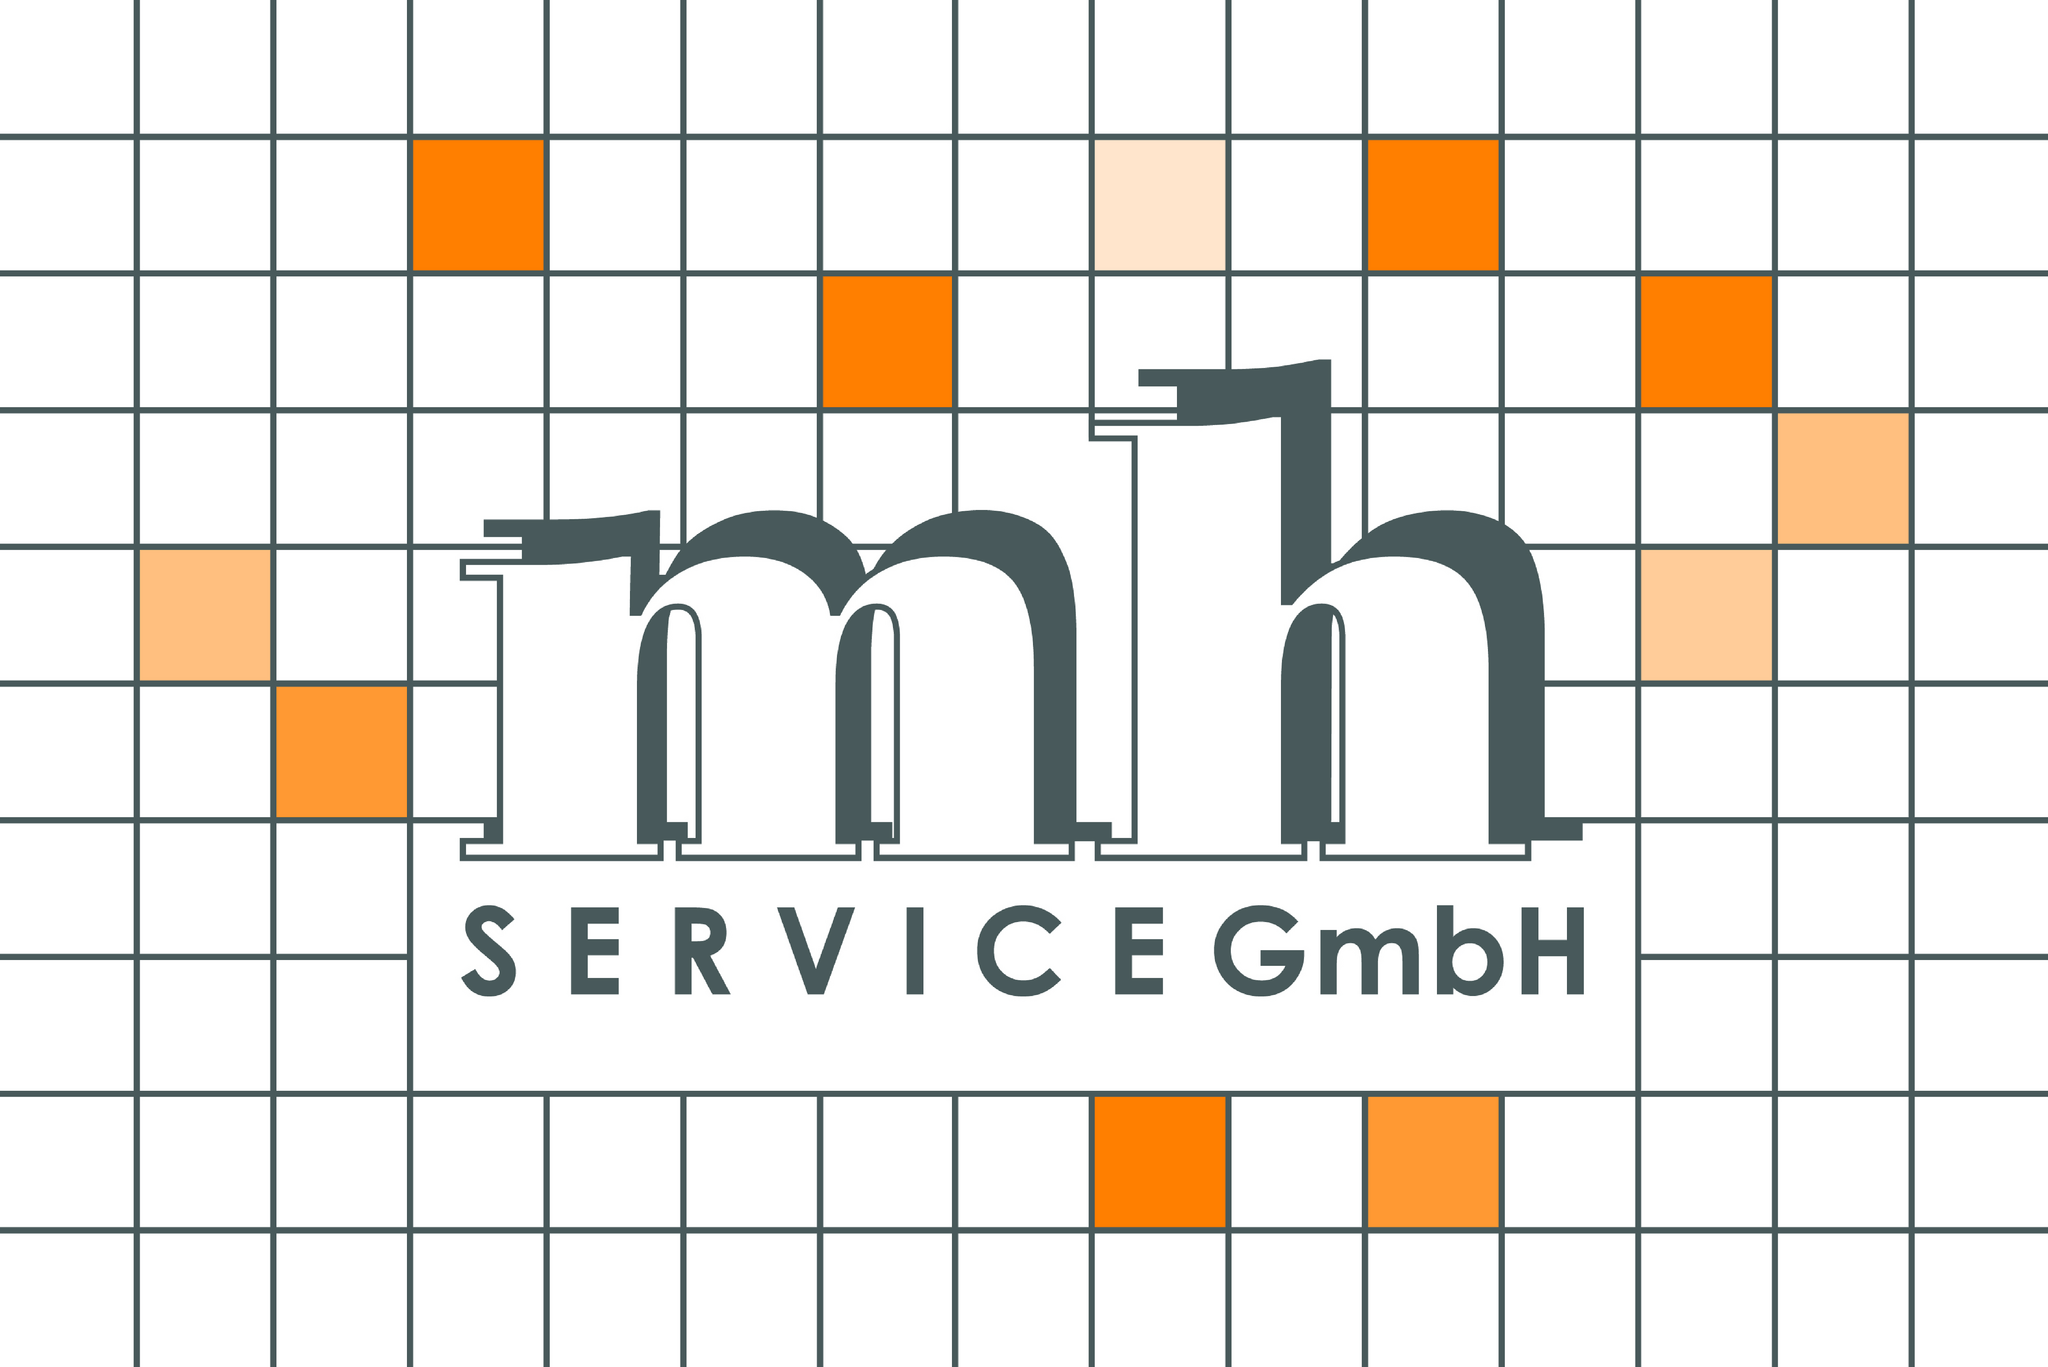 MH Service GMBH (Germany)